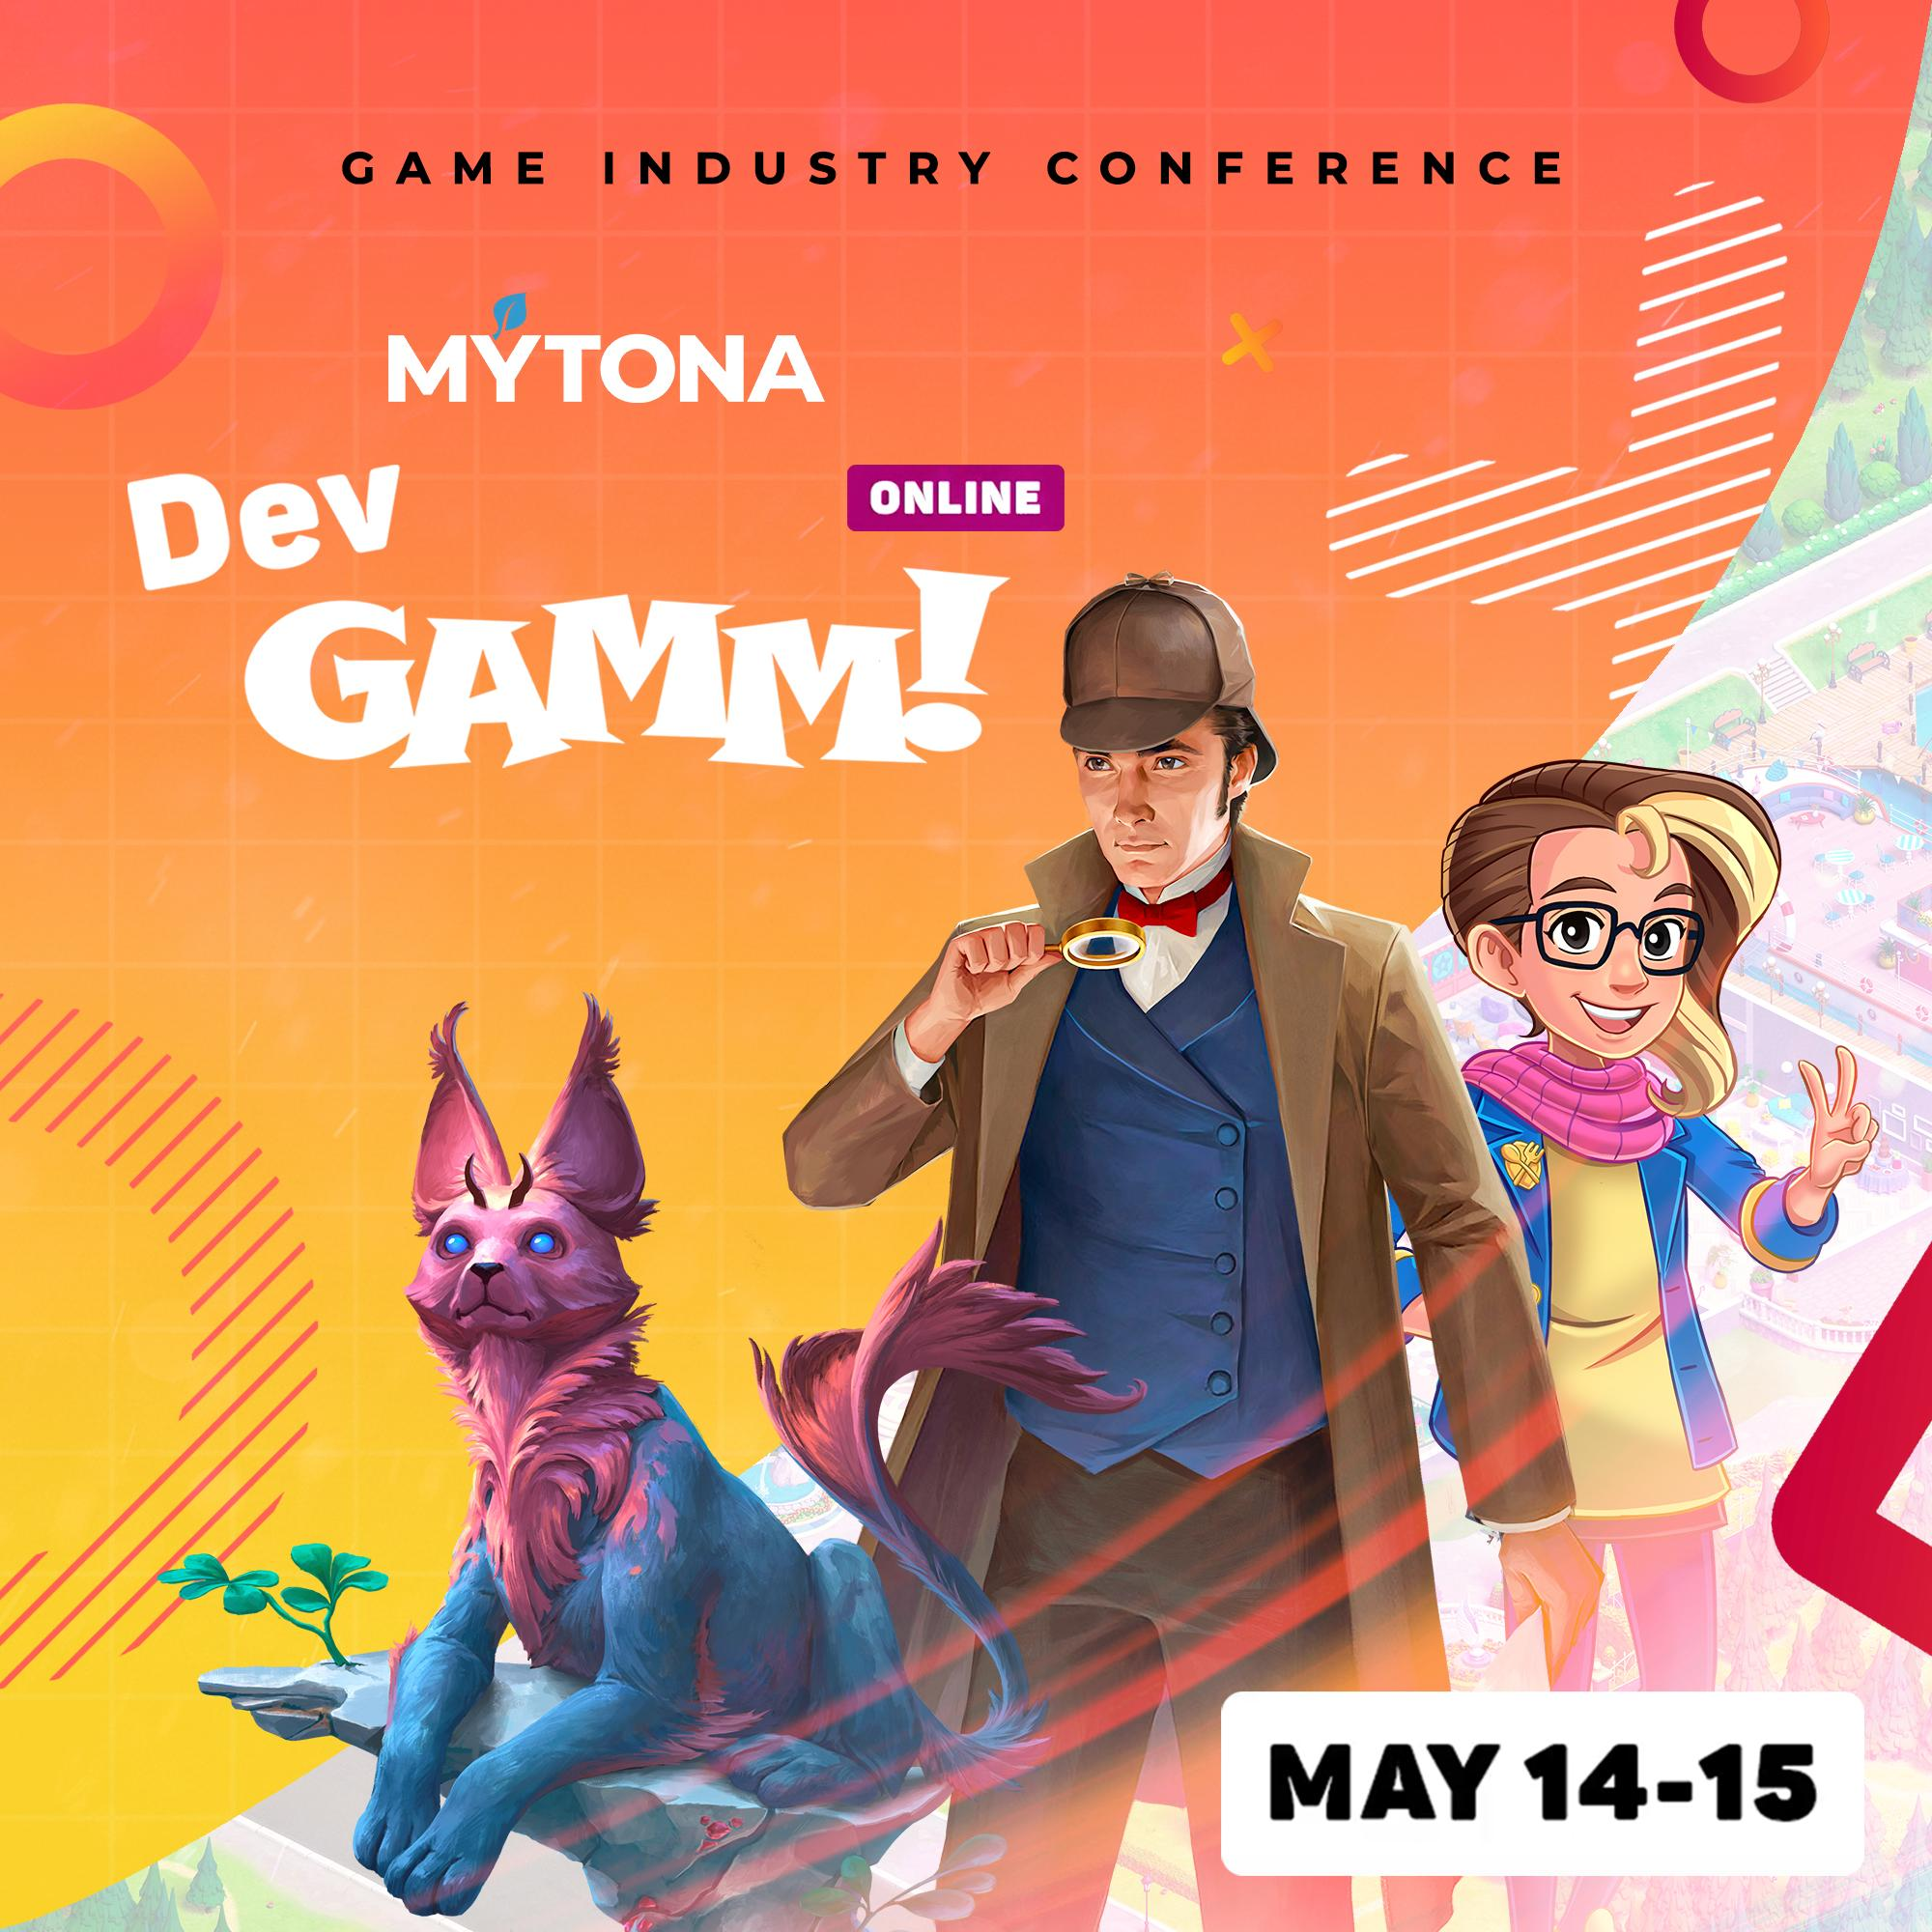 MYTONA at DevGAMM 2020: Now Online!